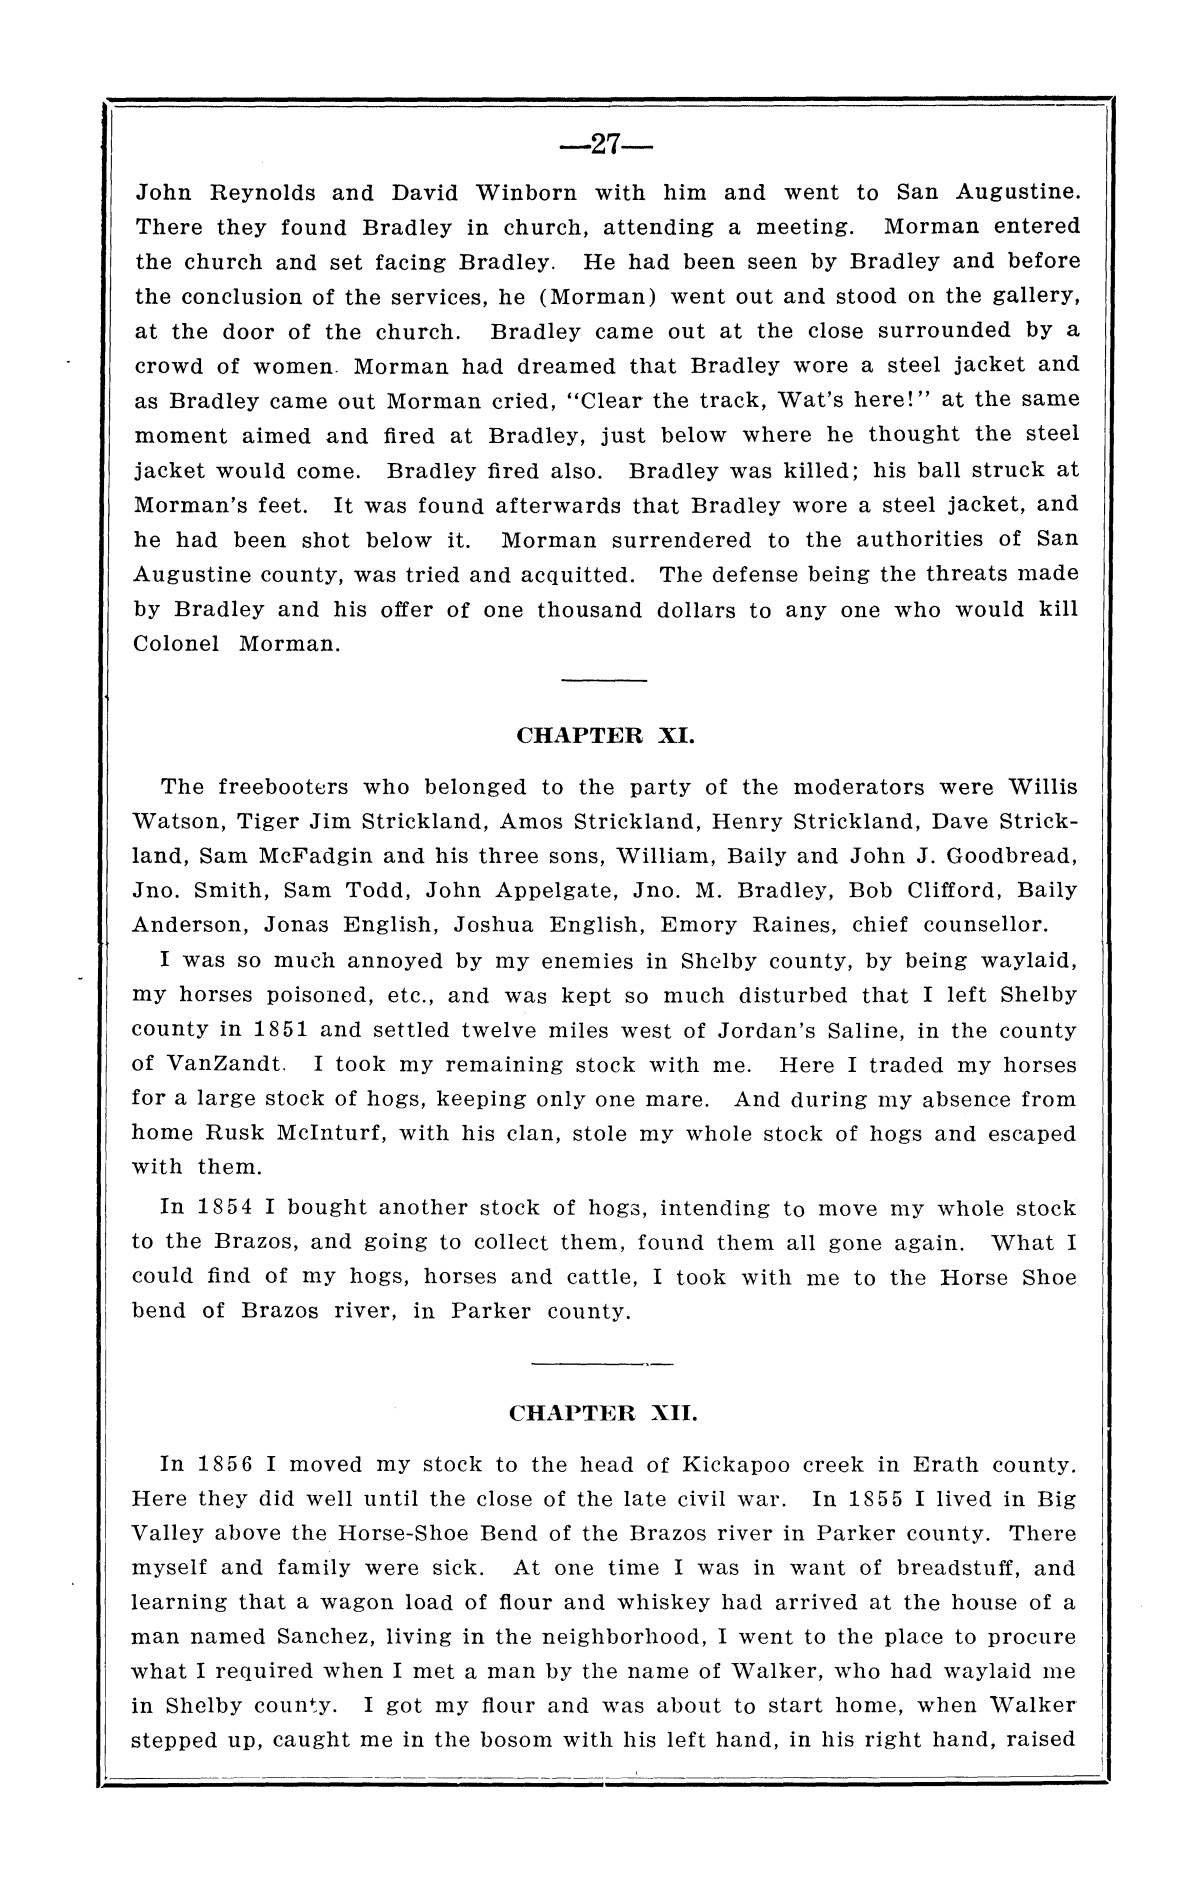 History of the regulators and moderators and the Shelby County war in 1841 and 1842, in the republic of Texas, with facts and incidents in the early history of the republic and state, from 1837 to the annexation, together with incidents of frontier life and Indian troubles, and the war on the reserve in Young County in 1857                                                                                                      [Sequence #]: 29 of 42